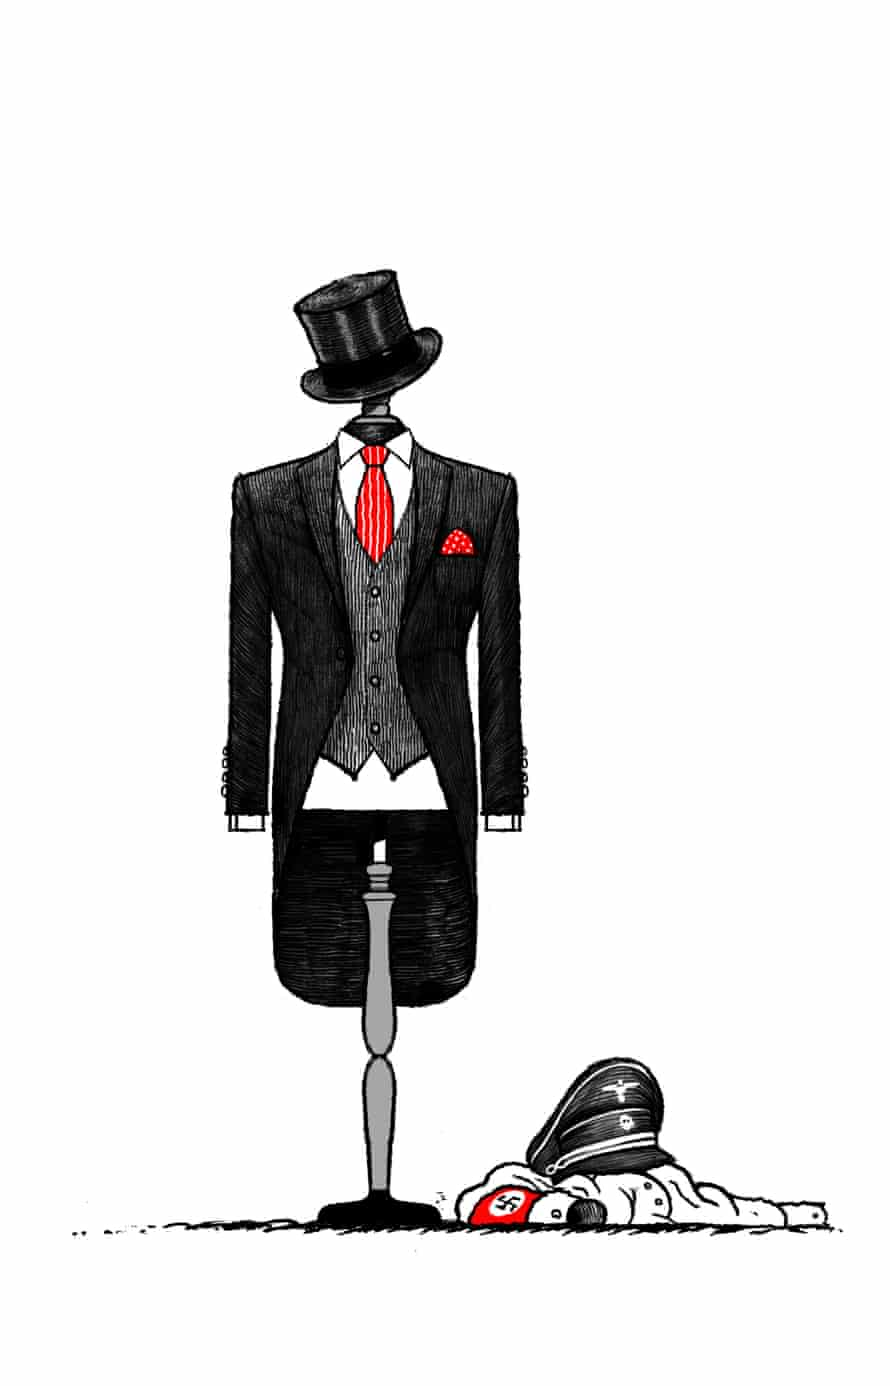 Illustration by David Foldvari of a three-piece suit on a dummy, with a Nazi uniform crumpled on the floor